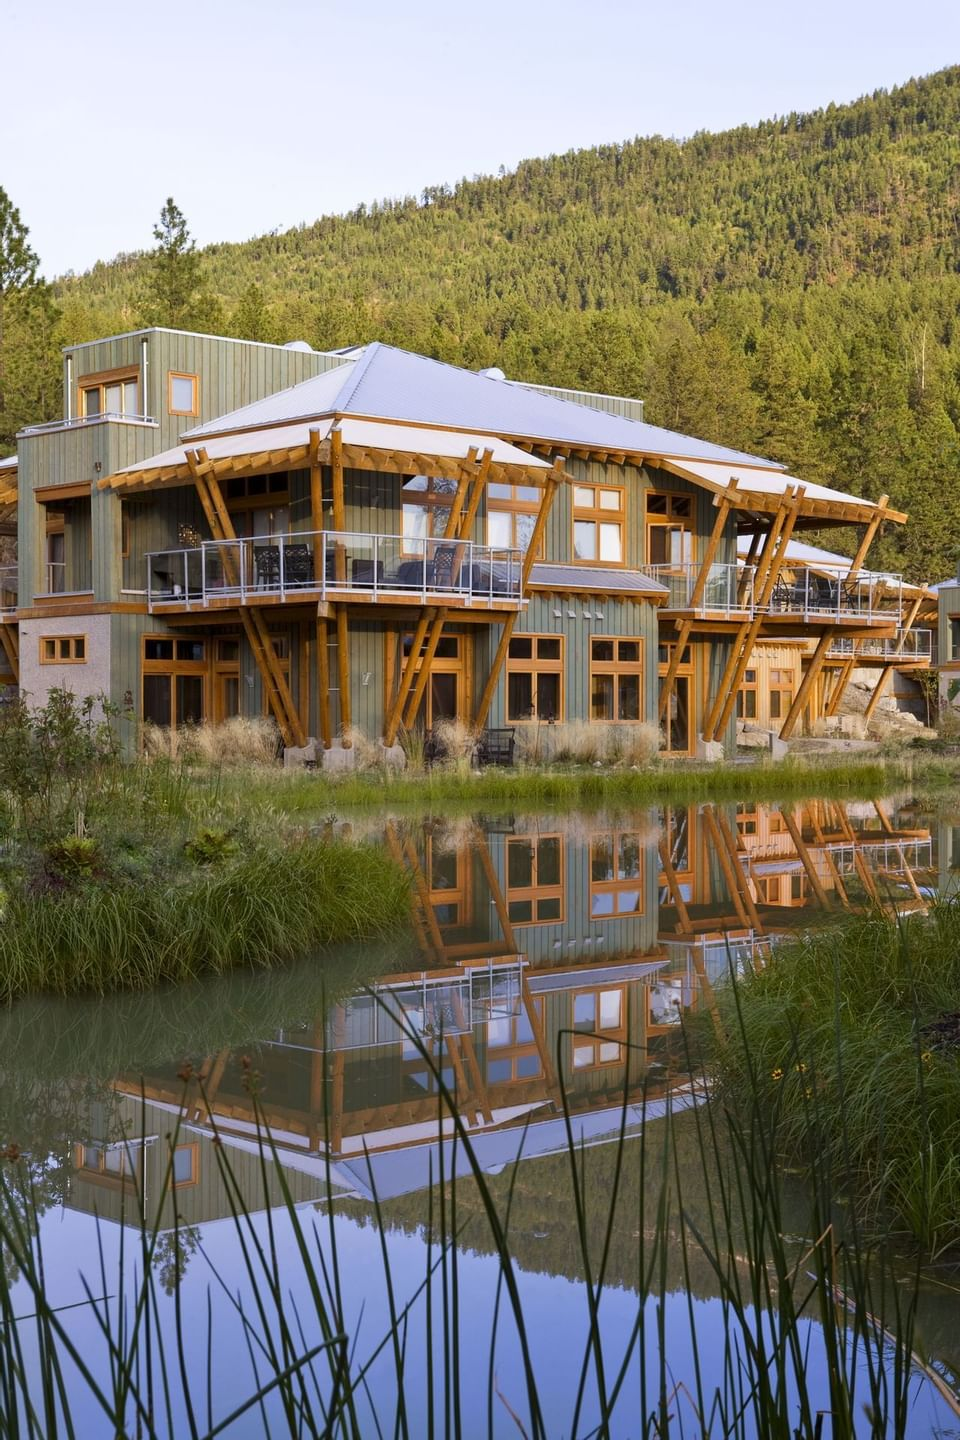 Trout lake townhomes at Outback Lakeside Vacation Homes